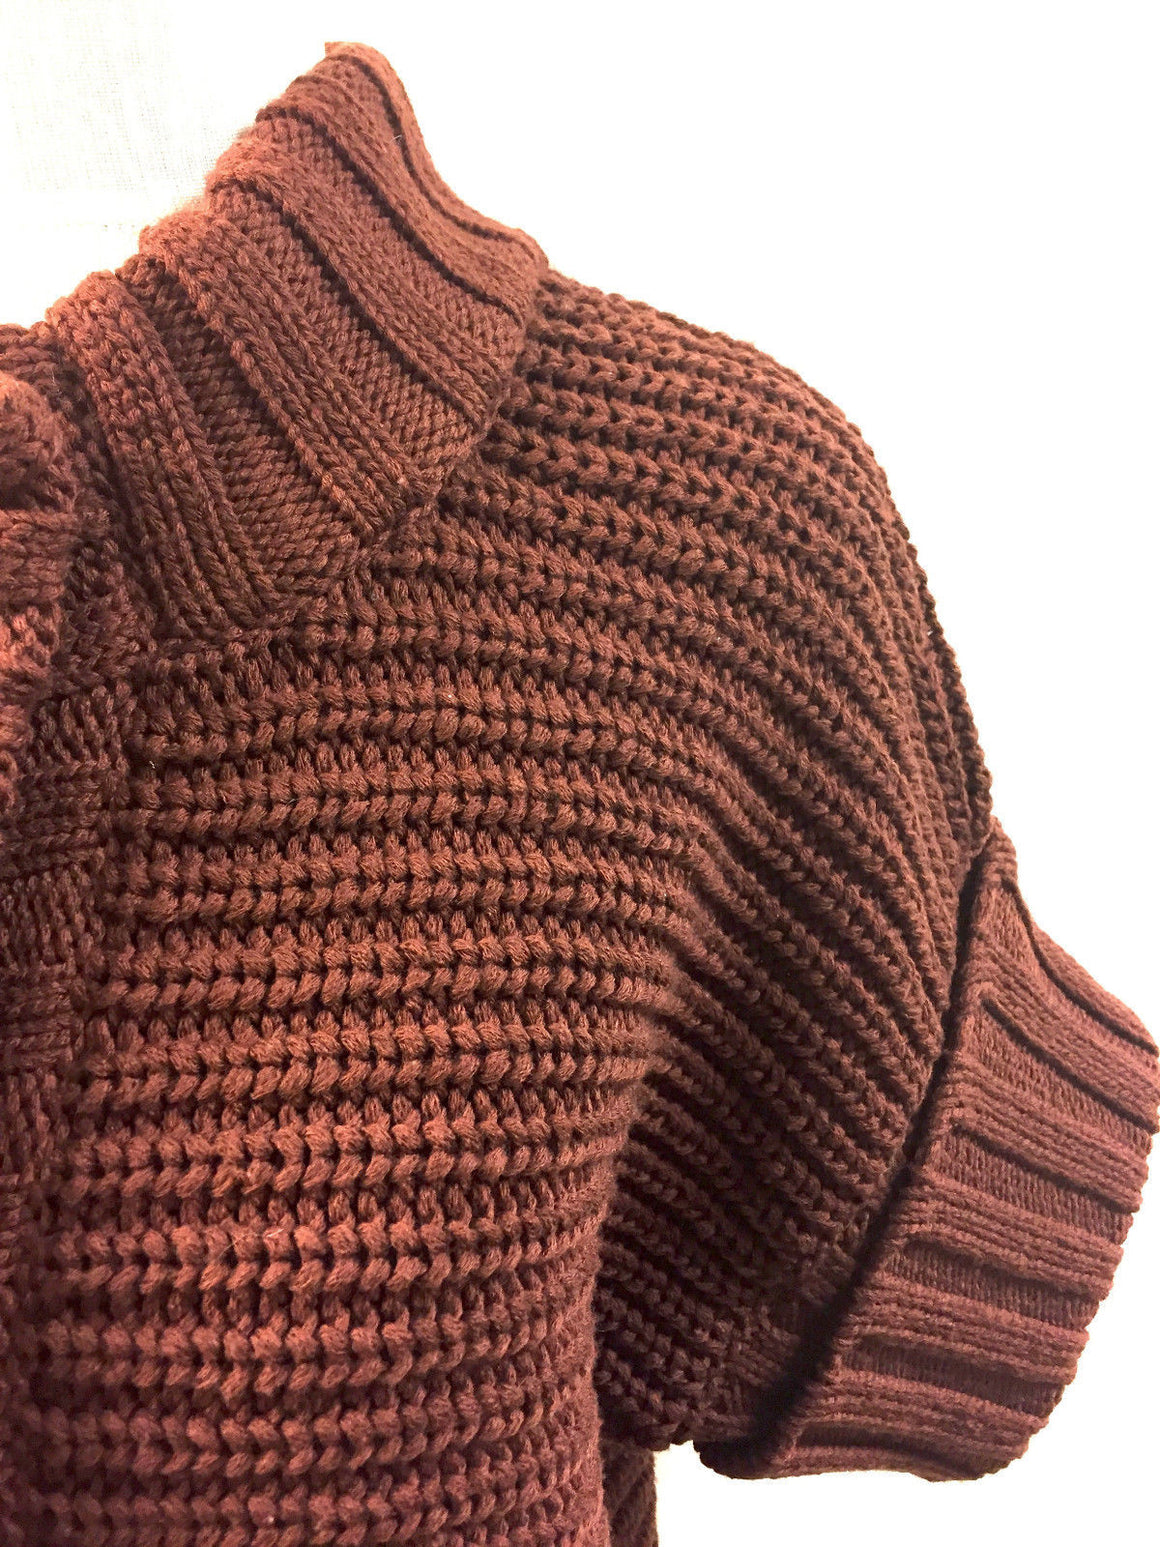 bisbiz.com MAX MARA Tobacco-Brown Rib-Knit Wool Short-Sleeves CroppedCardigan Sweater - Bis Luxury Resale